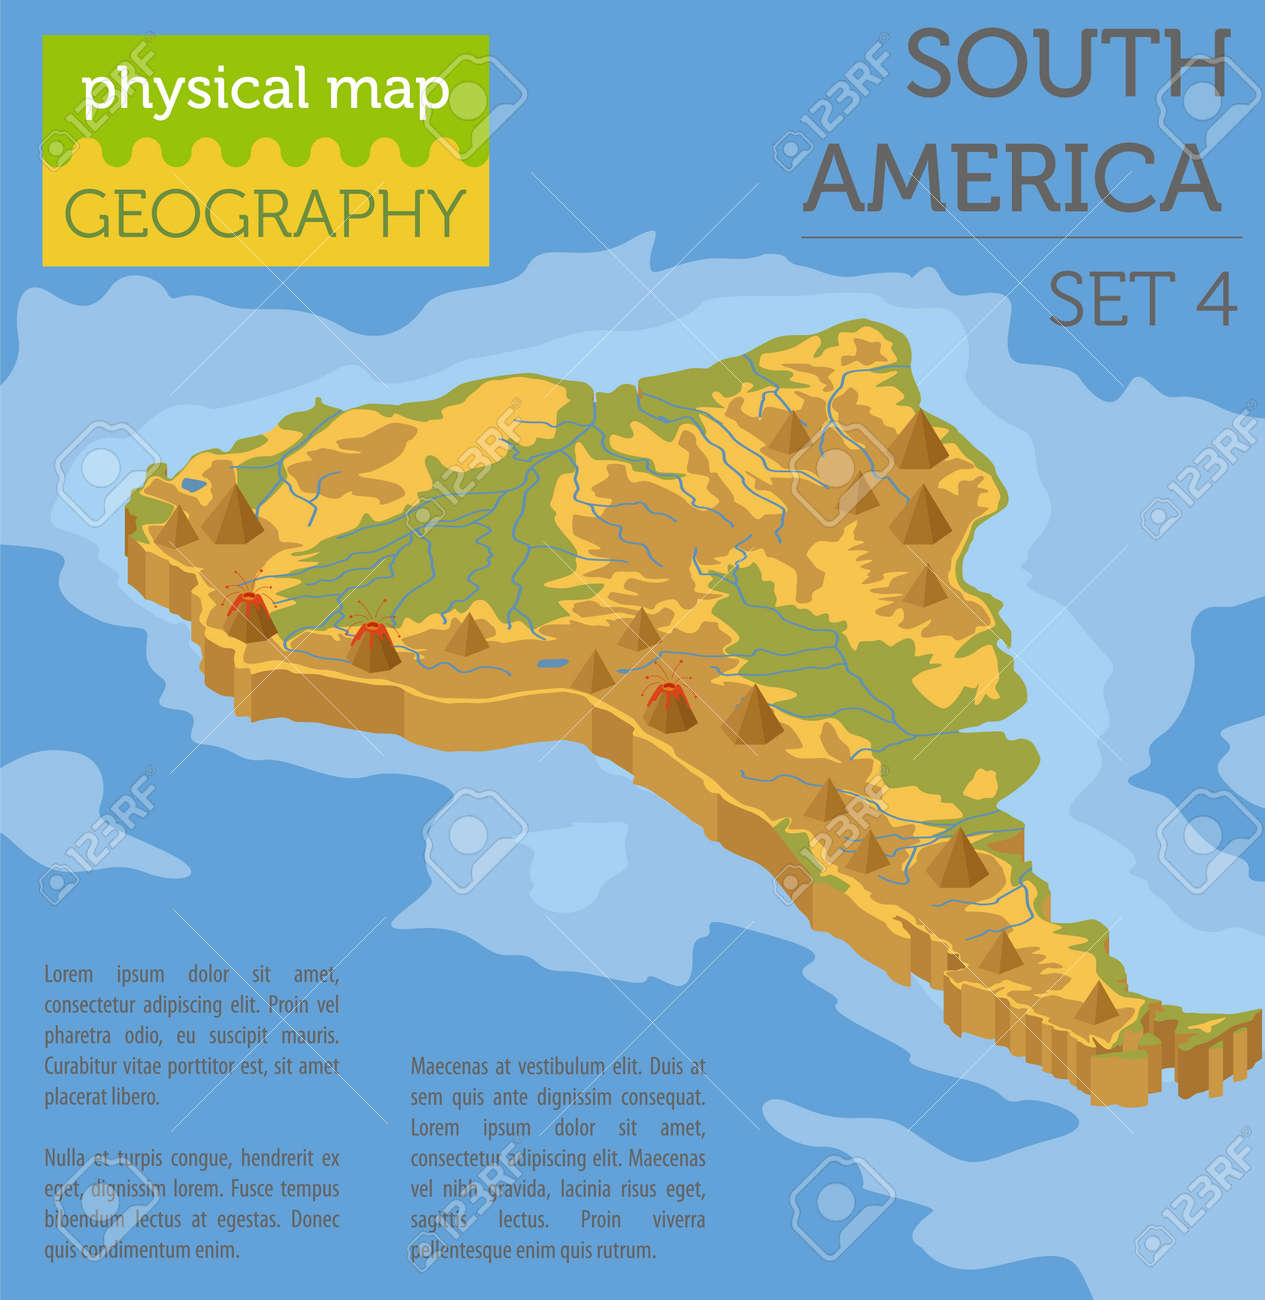 Isometric 3d South America Physical Map Elements. Build Your Own Geography  Info Graphic Collection.